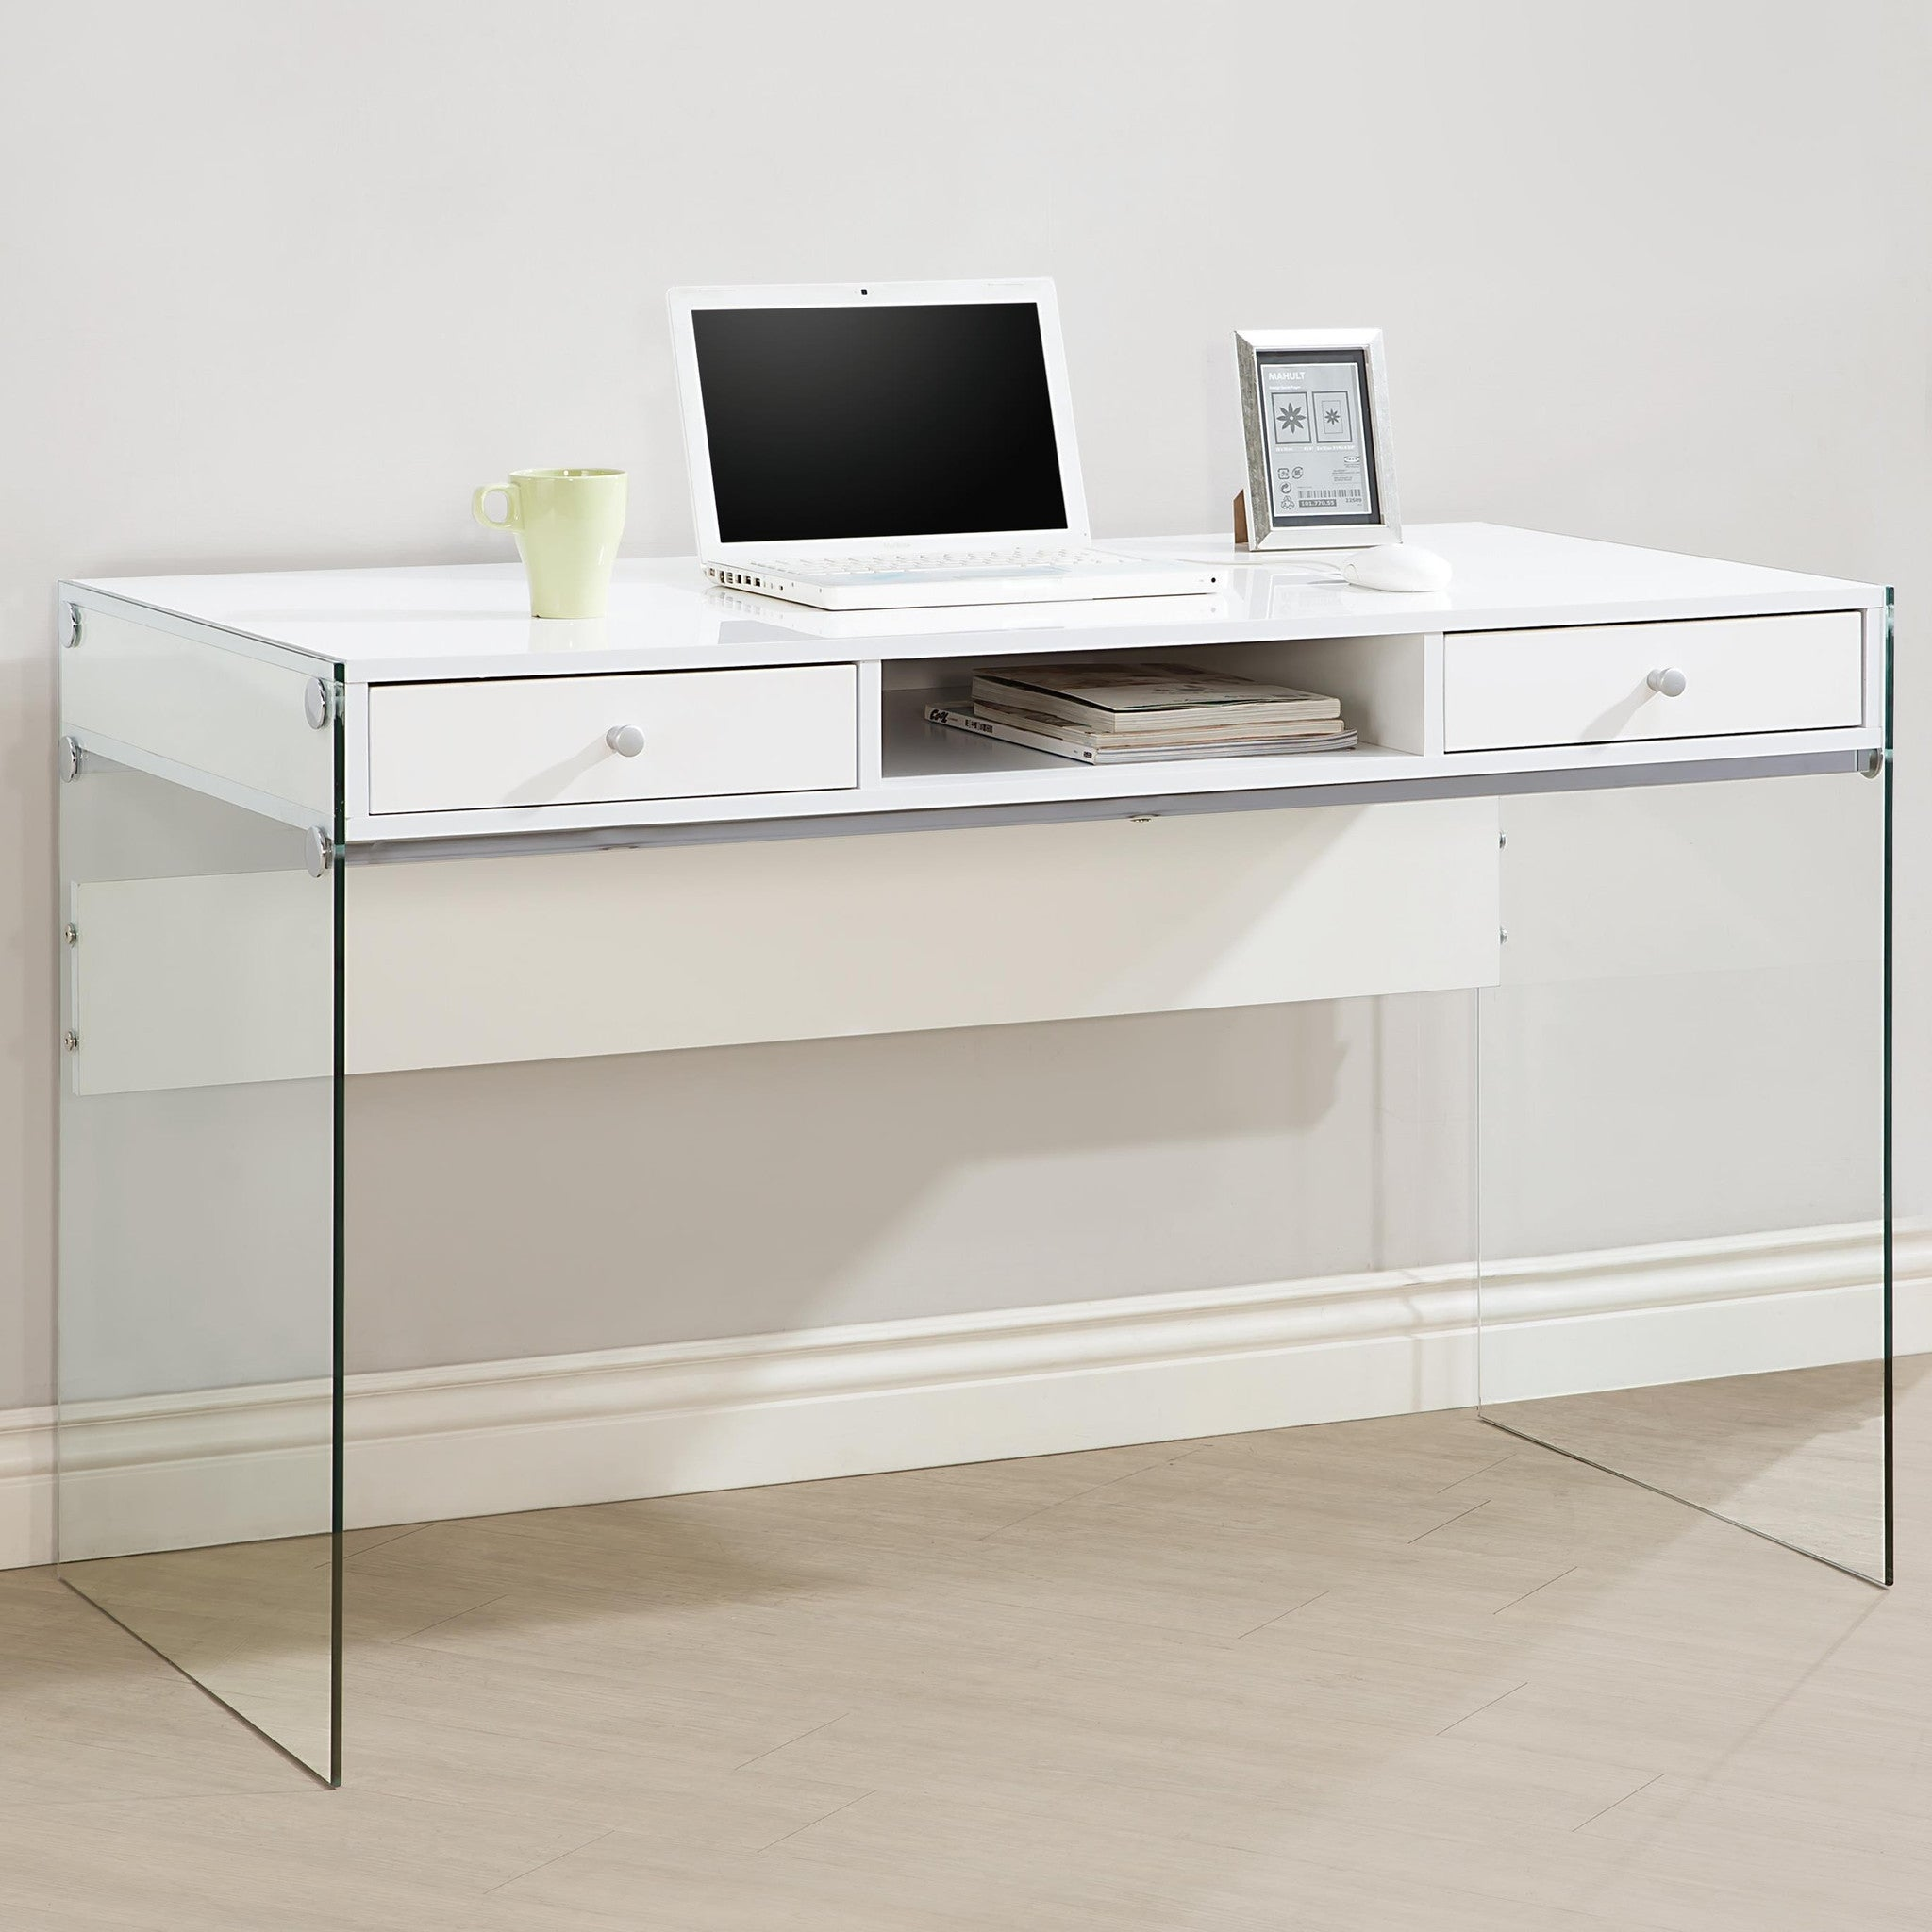 free desk overstock garden white in pia lumisource with top contemporary metal glass product shipping home today